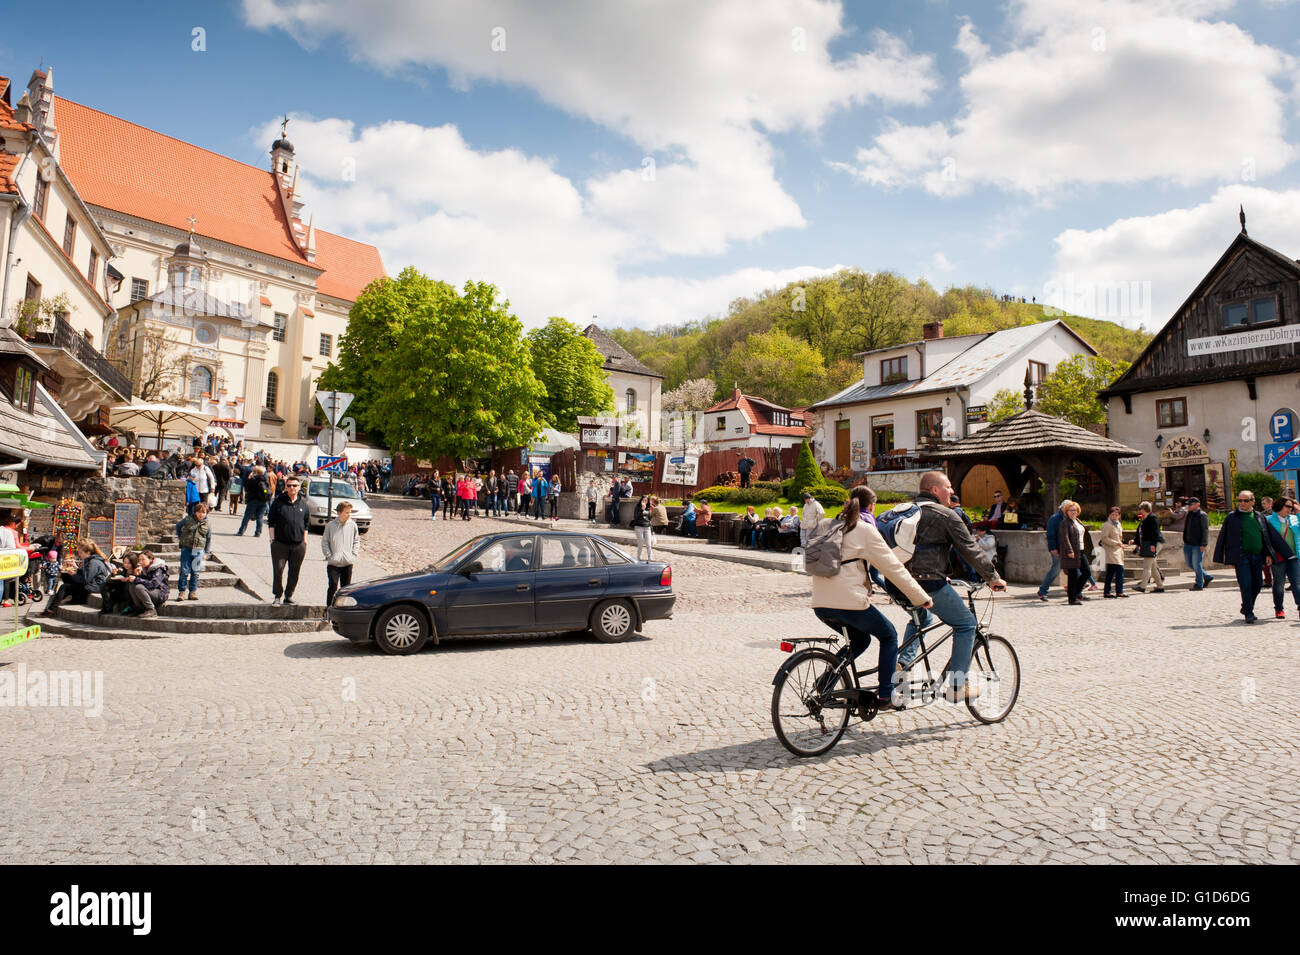 Outing at the Market square in Kazimierz Dolny, Poland, Europe, tandem bike and car vehicle people taking a short - Stock Image